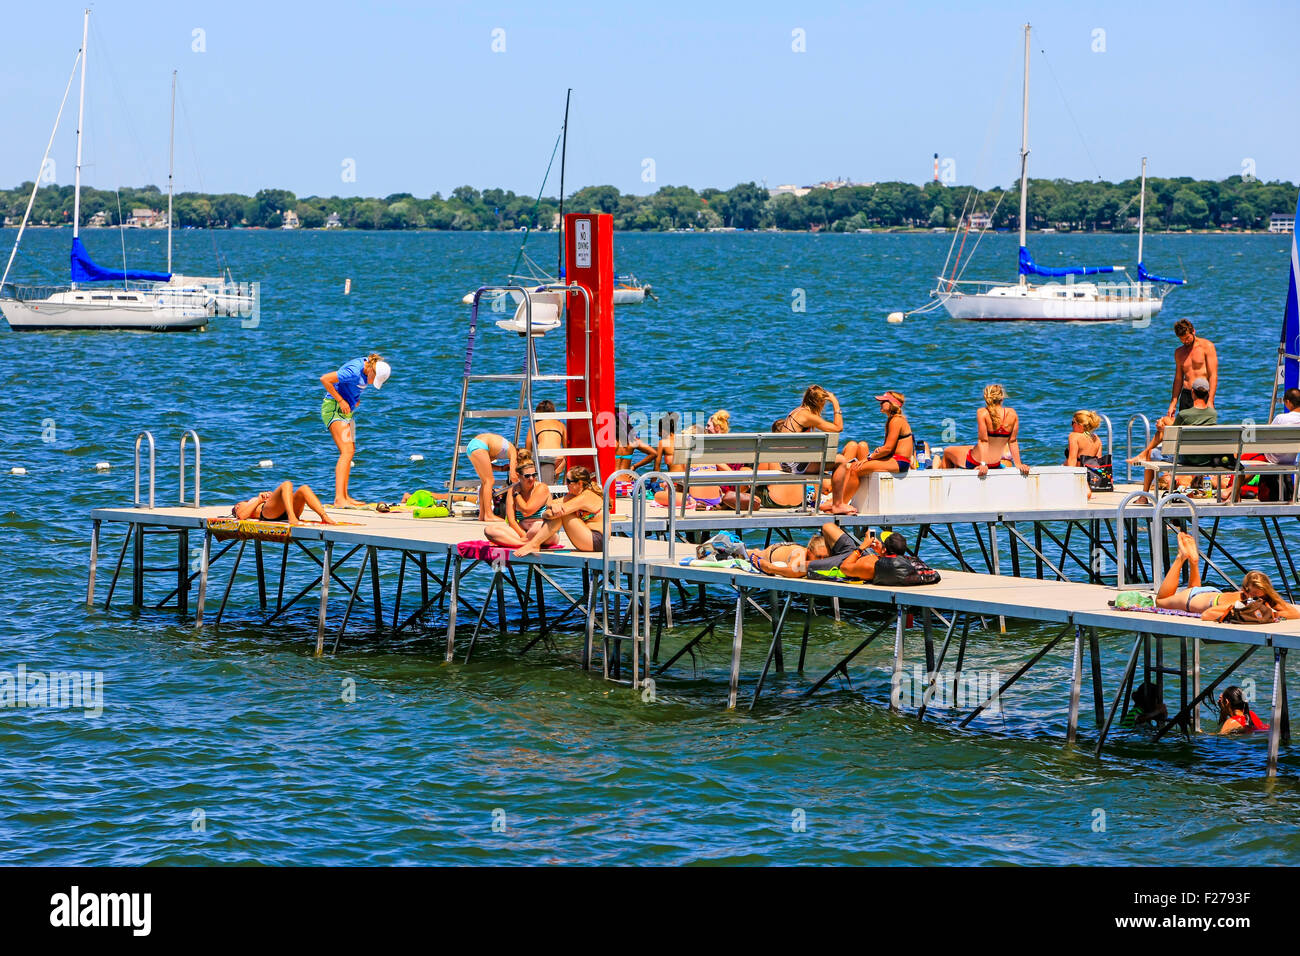 People enjoying the summer in Madison Wisconsin at the Memorial Union pier on Lake Mendota - Stock Image